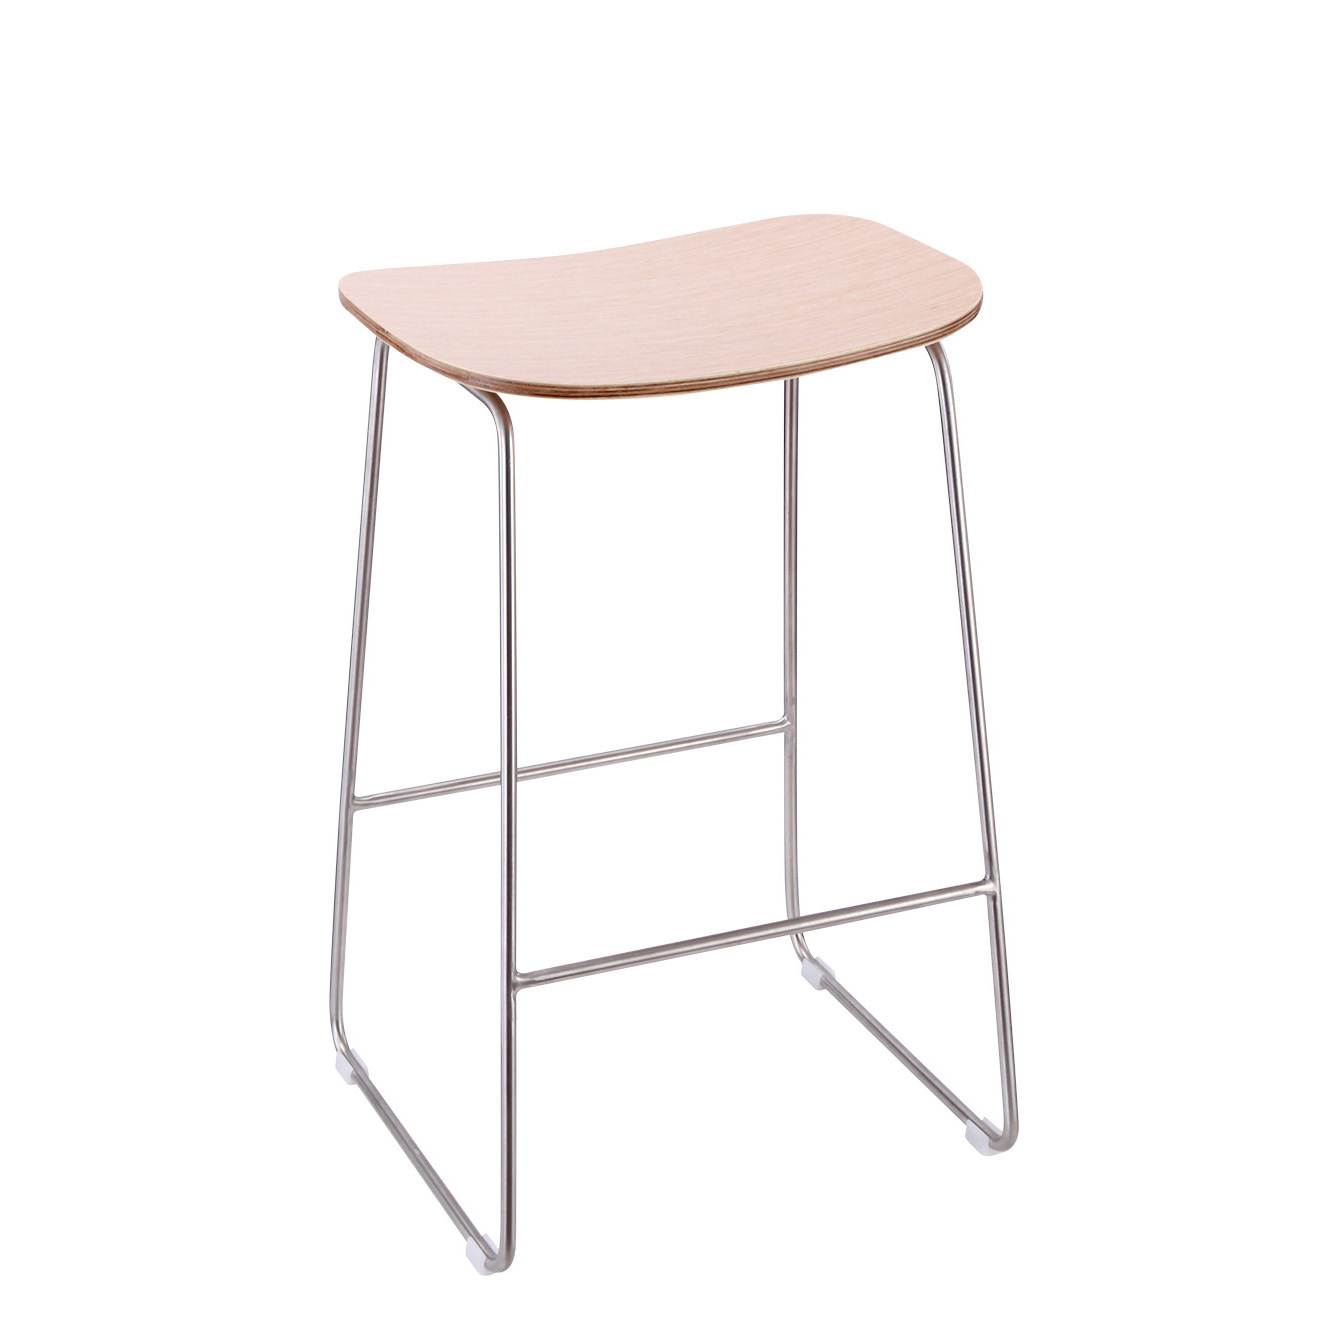 Manufacturer retail rounded stainless steel stool with wooden for mobile phone store experience disp